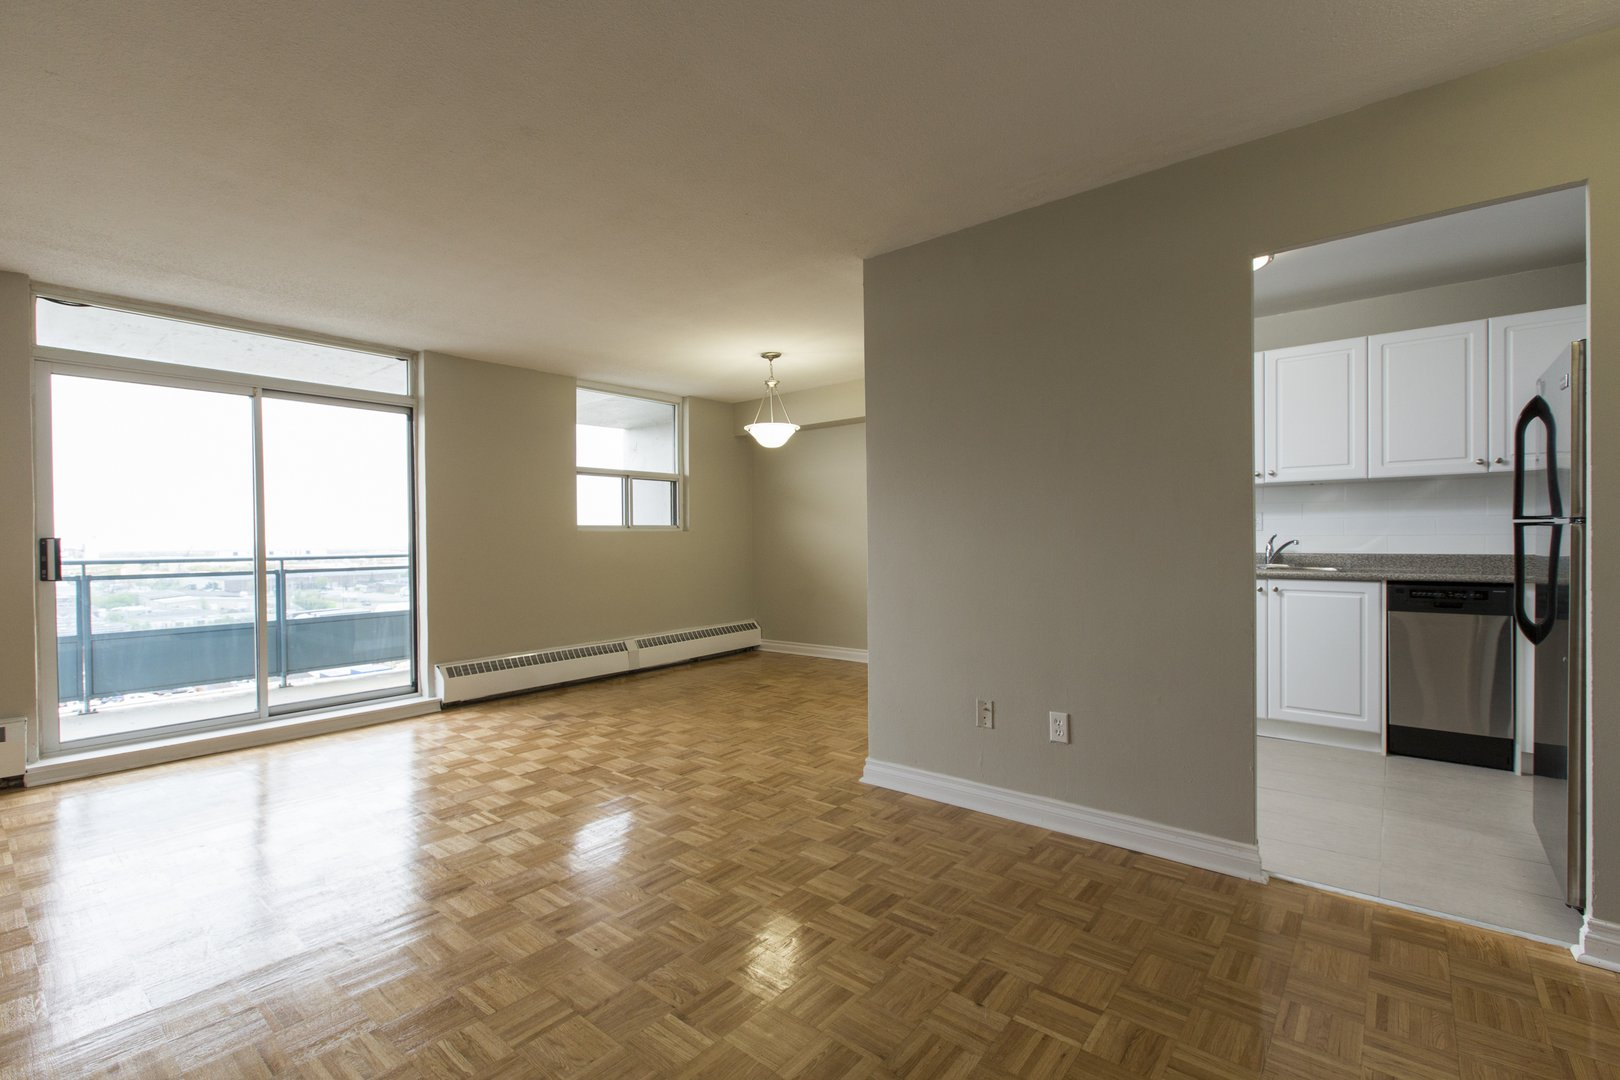 Apartment for rent at 33 Kennedy Rd S, Brampton, ON. This is the empty room with natural light, tile floor and hardwood floor.